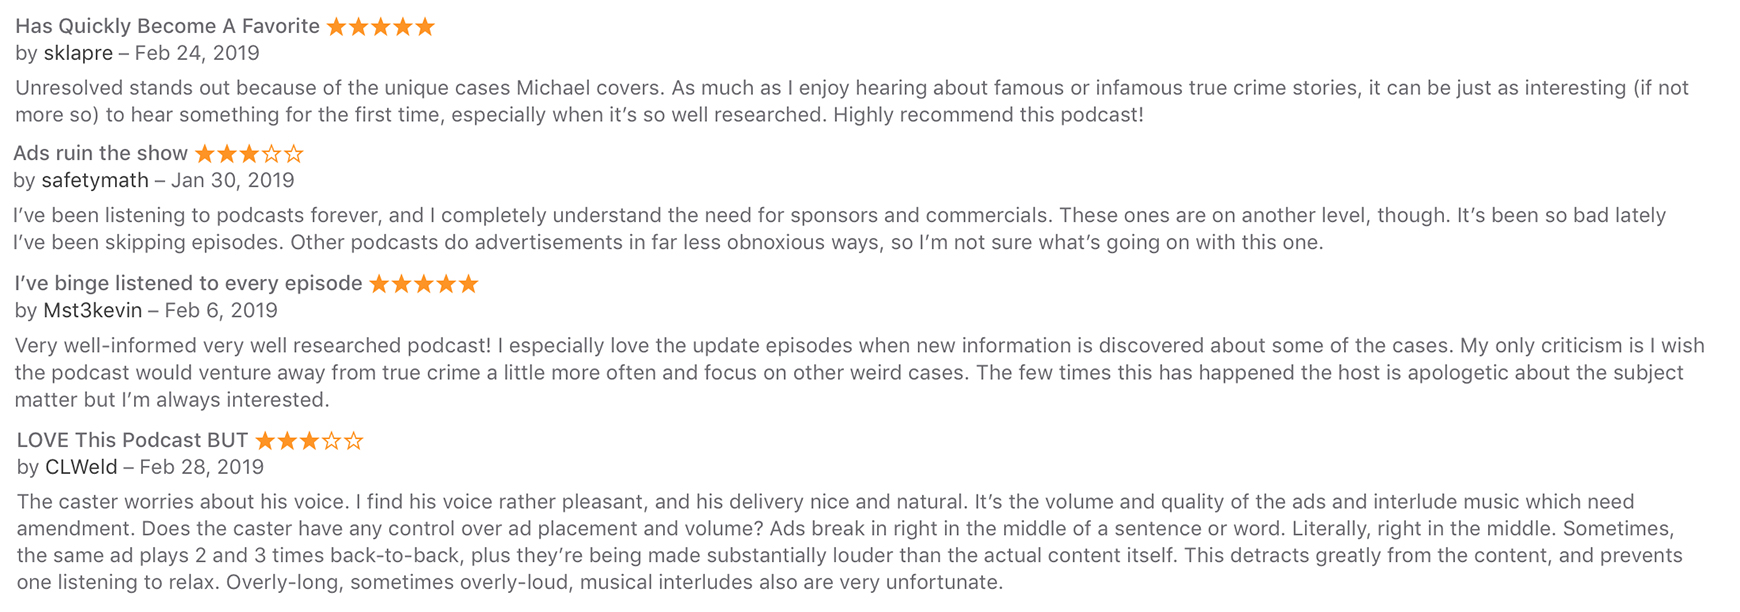 Unresolved Podcast